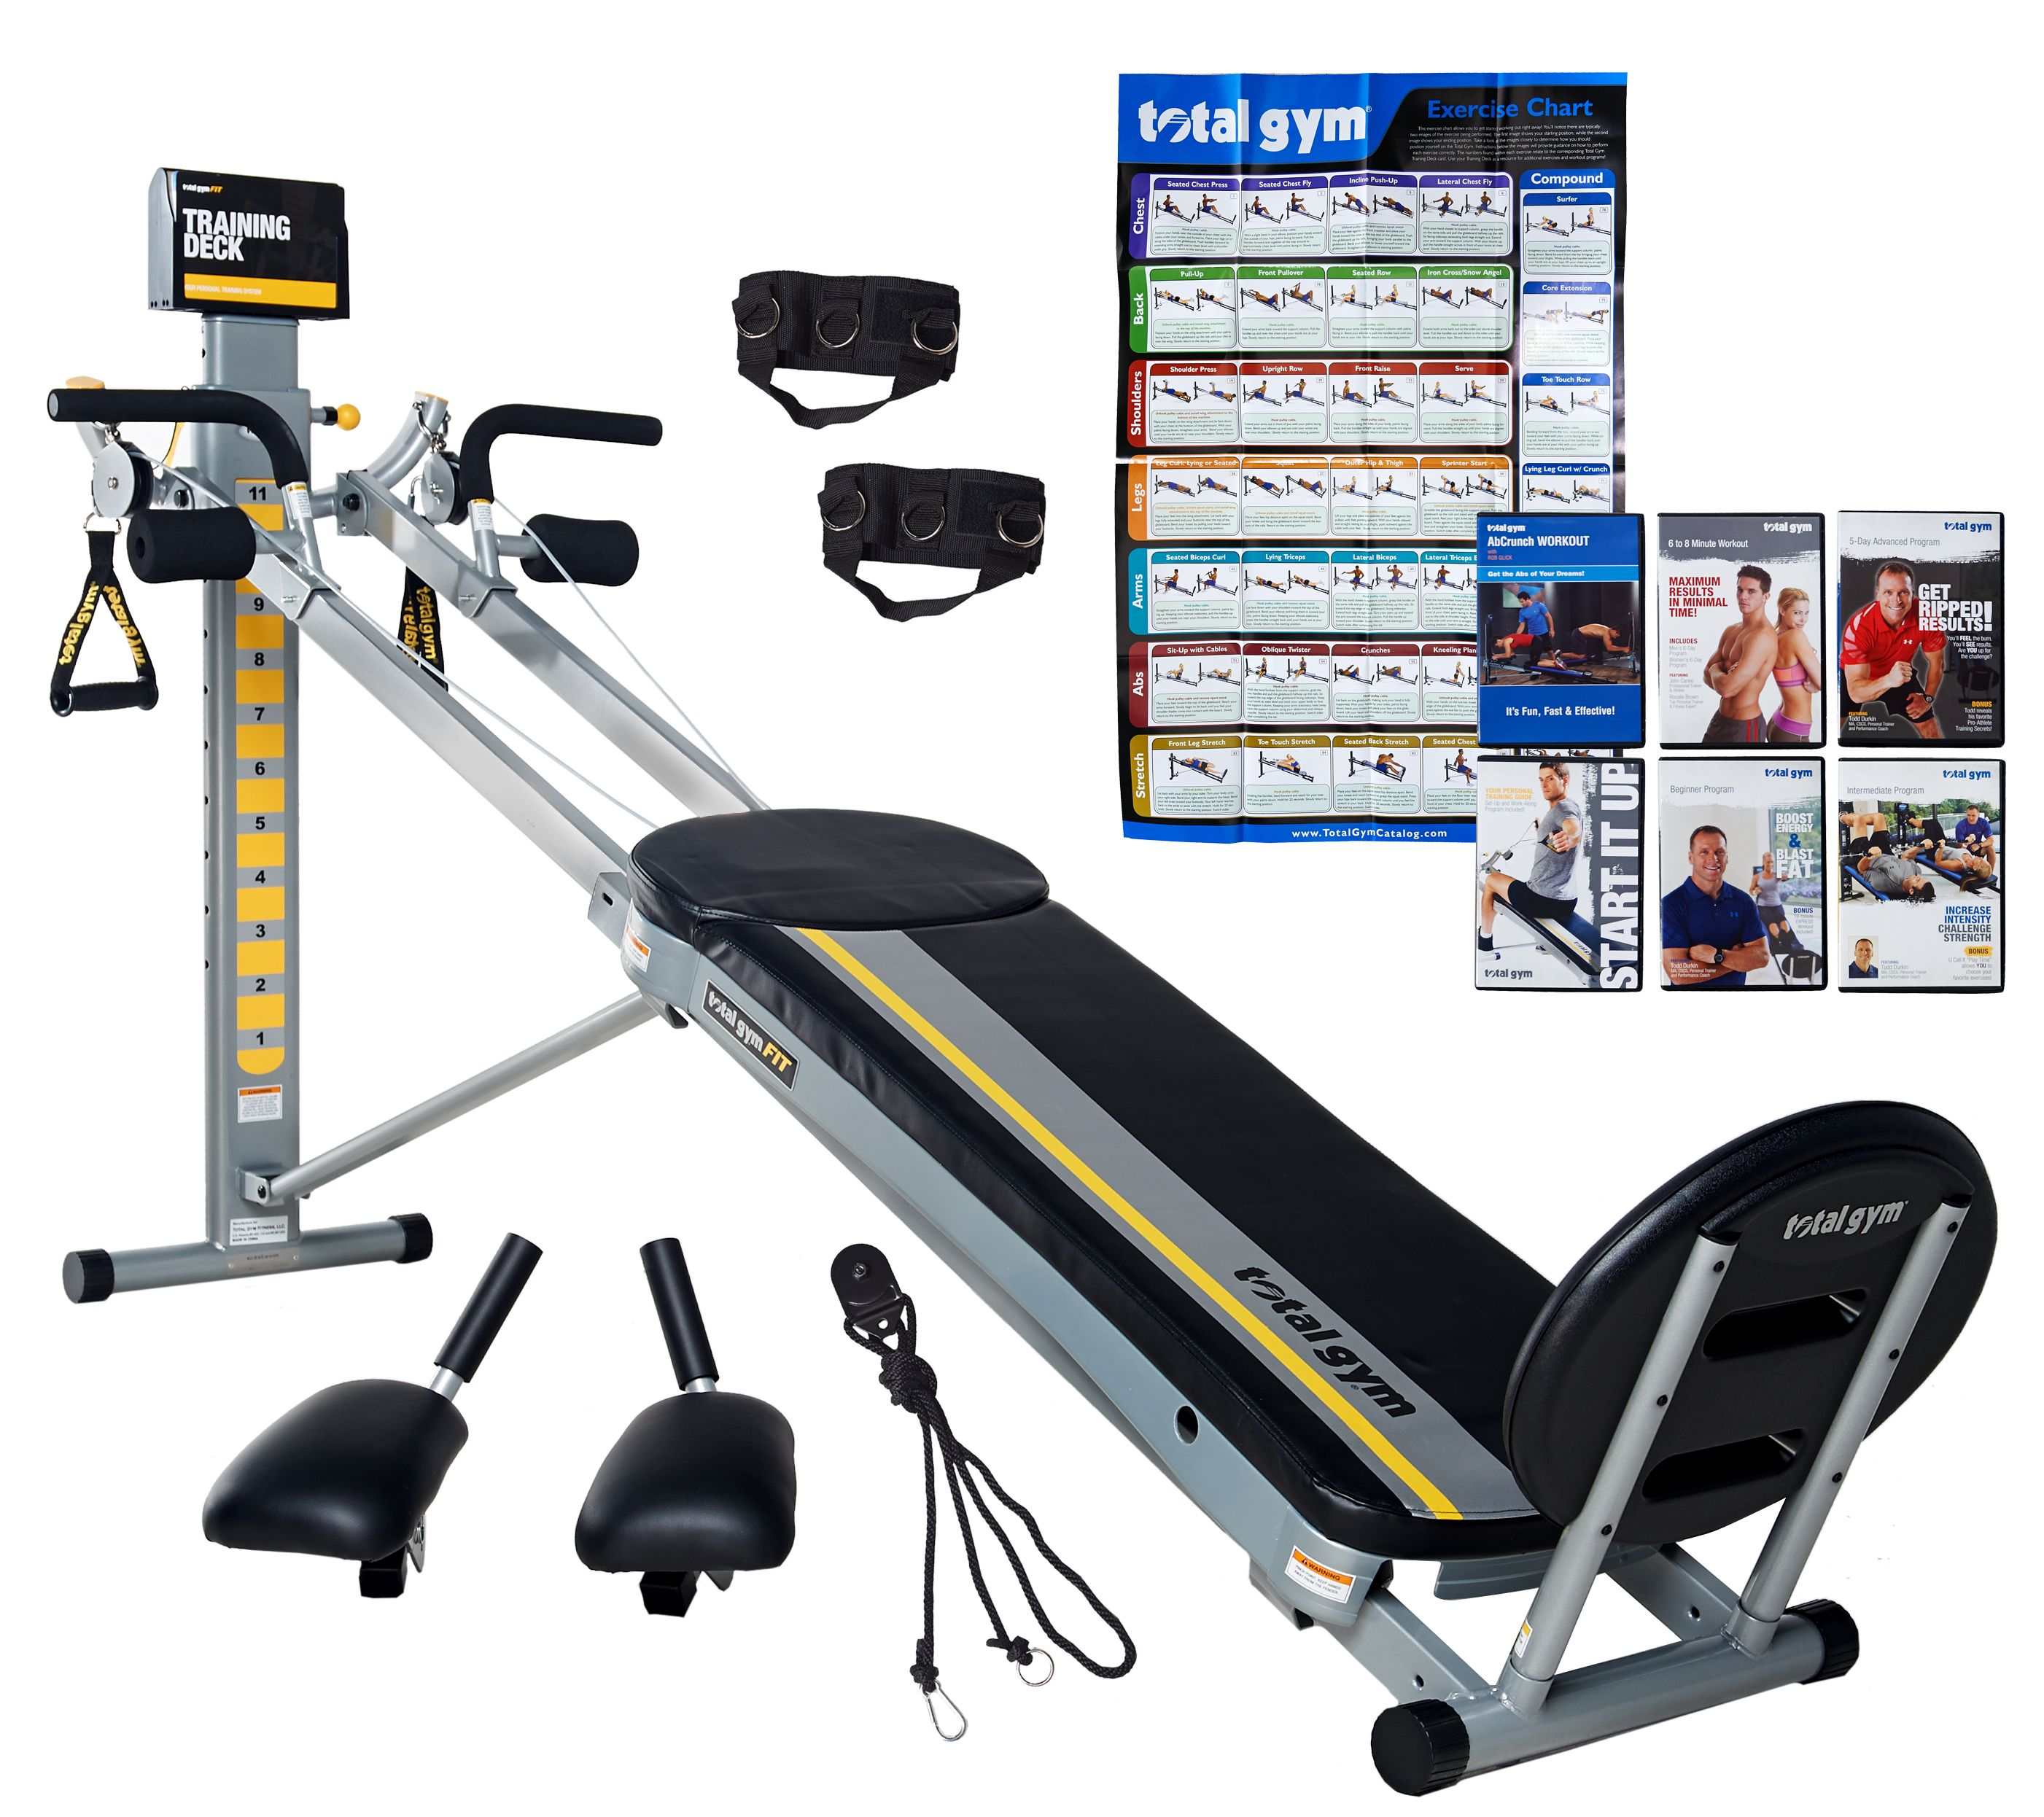 Total gym fit w dvd s attachments training deck wall